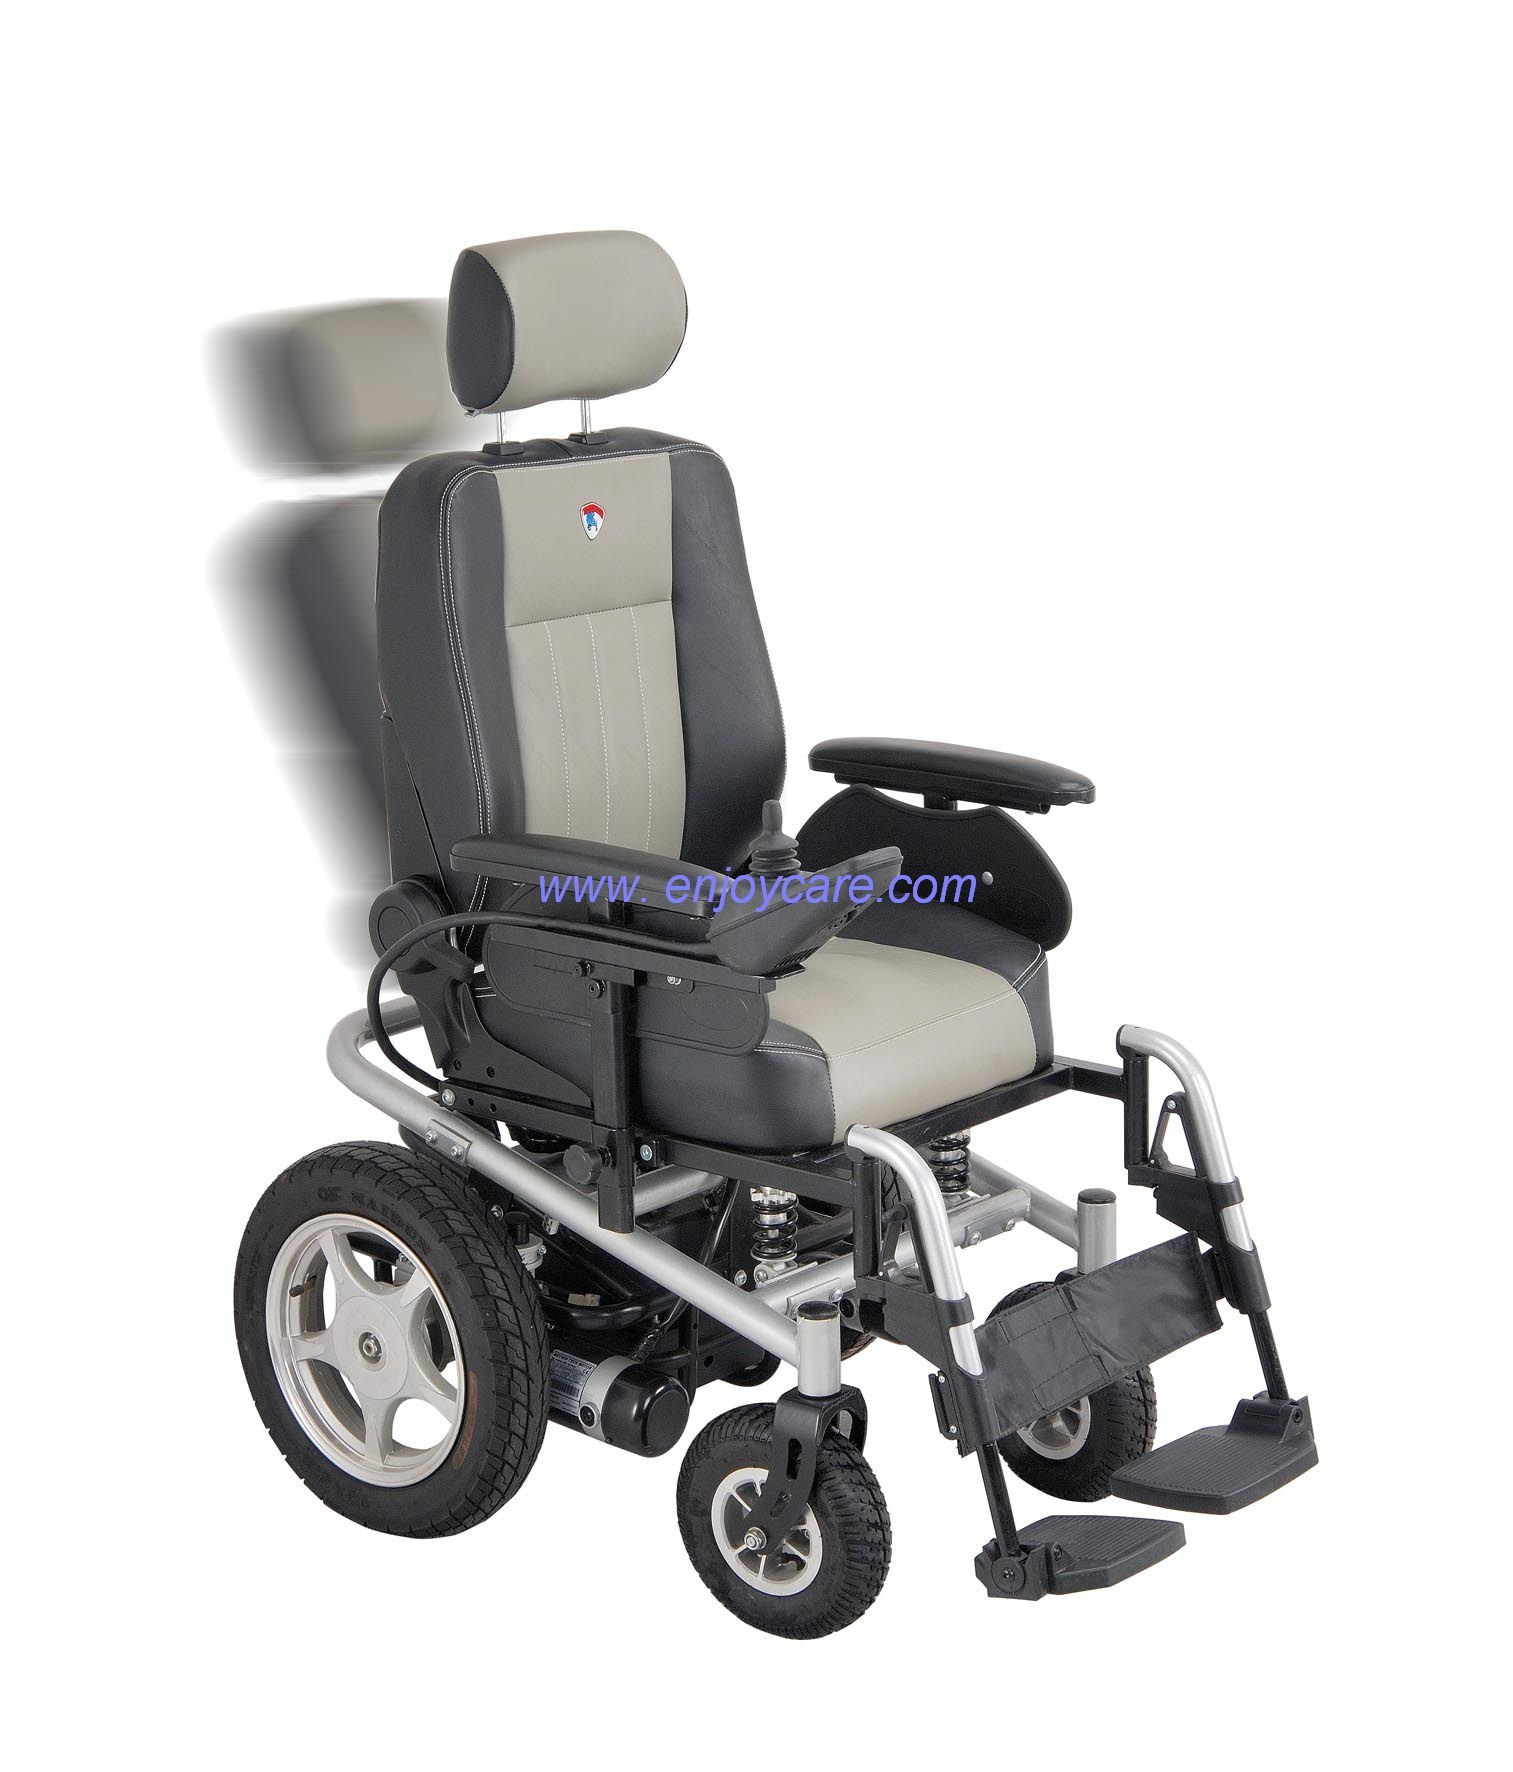 all terrain electric wheelchair stackable rolling chairs ebay autos post